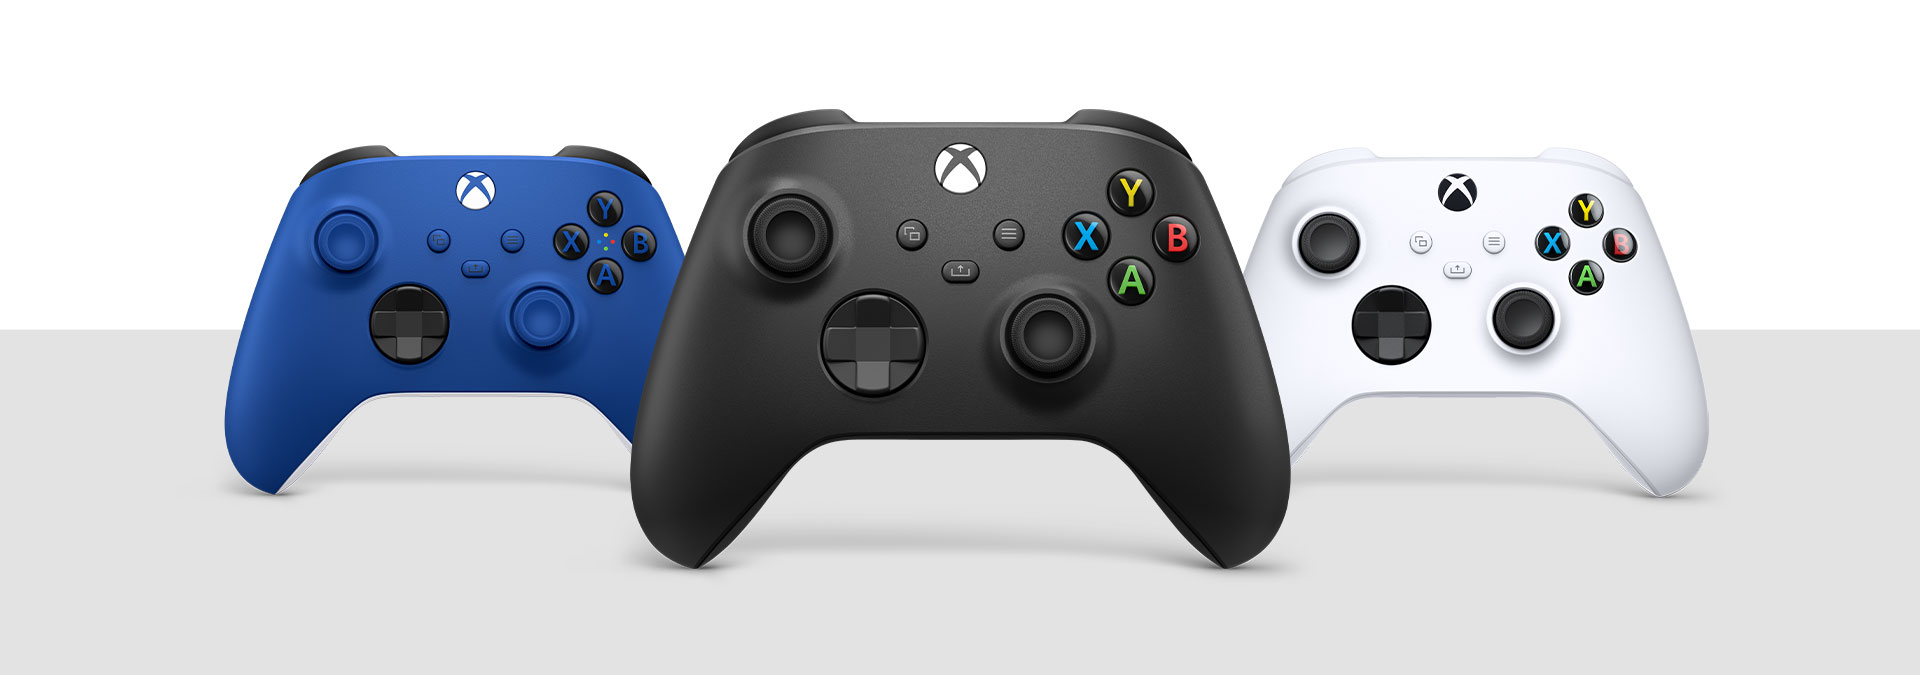 Xbox Wireless Controller Carbon Black, Robot White, and Shock Blue